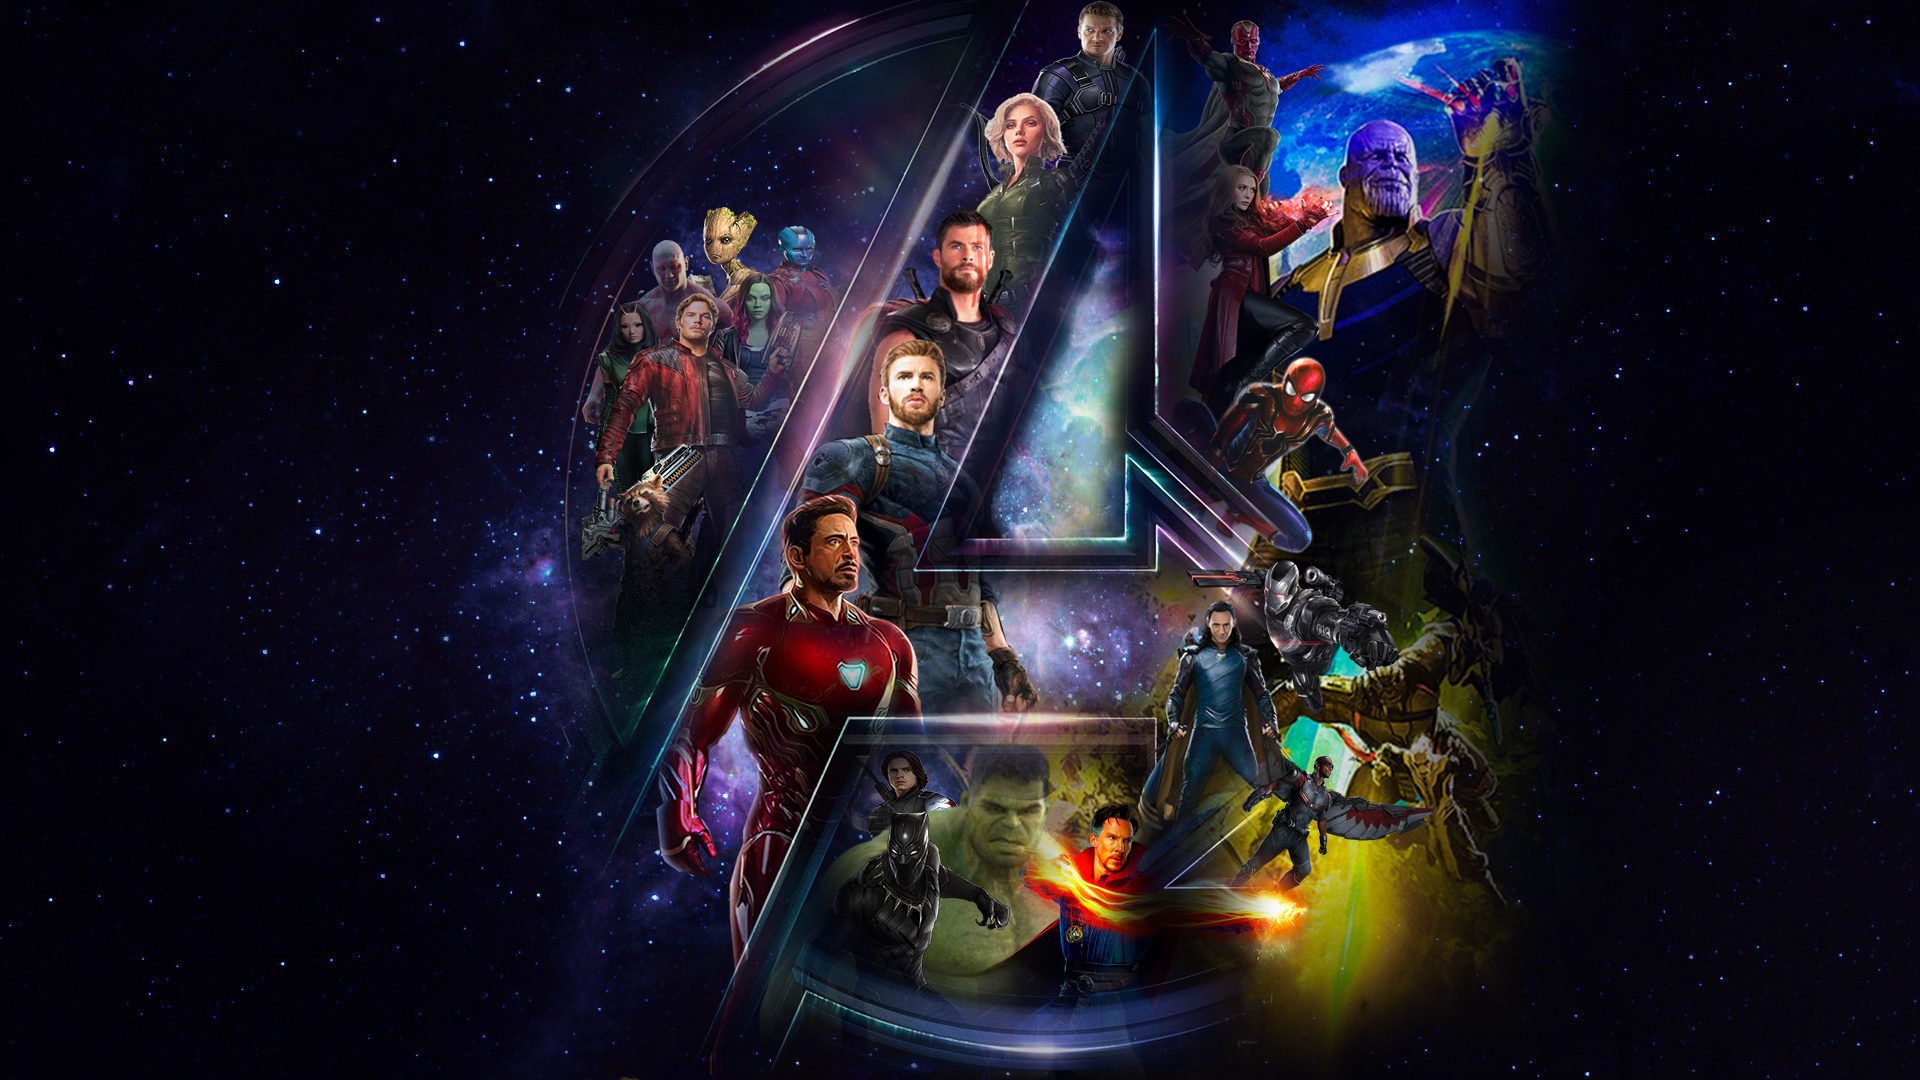 Avengers Infinity War Iphone Wallpaper: Avengers Infinity War Fan Art Wallpapers